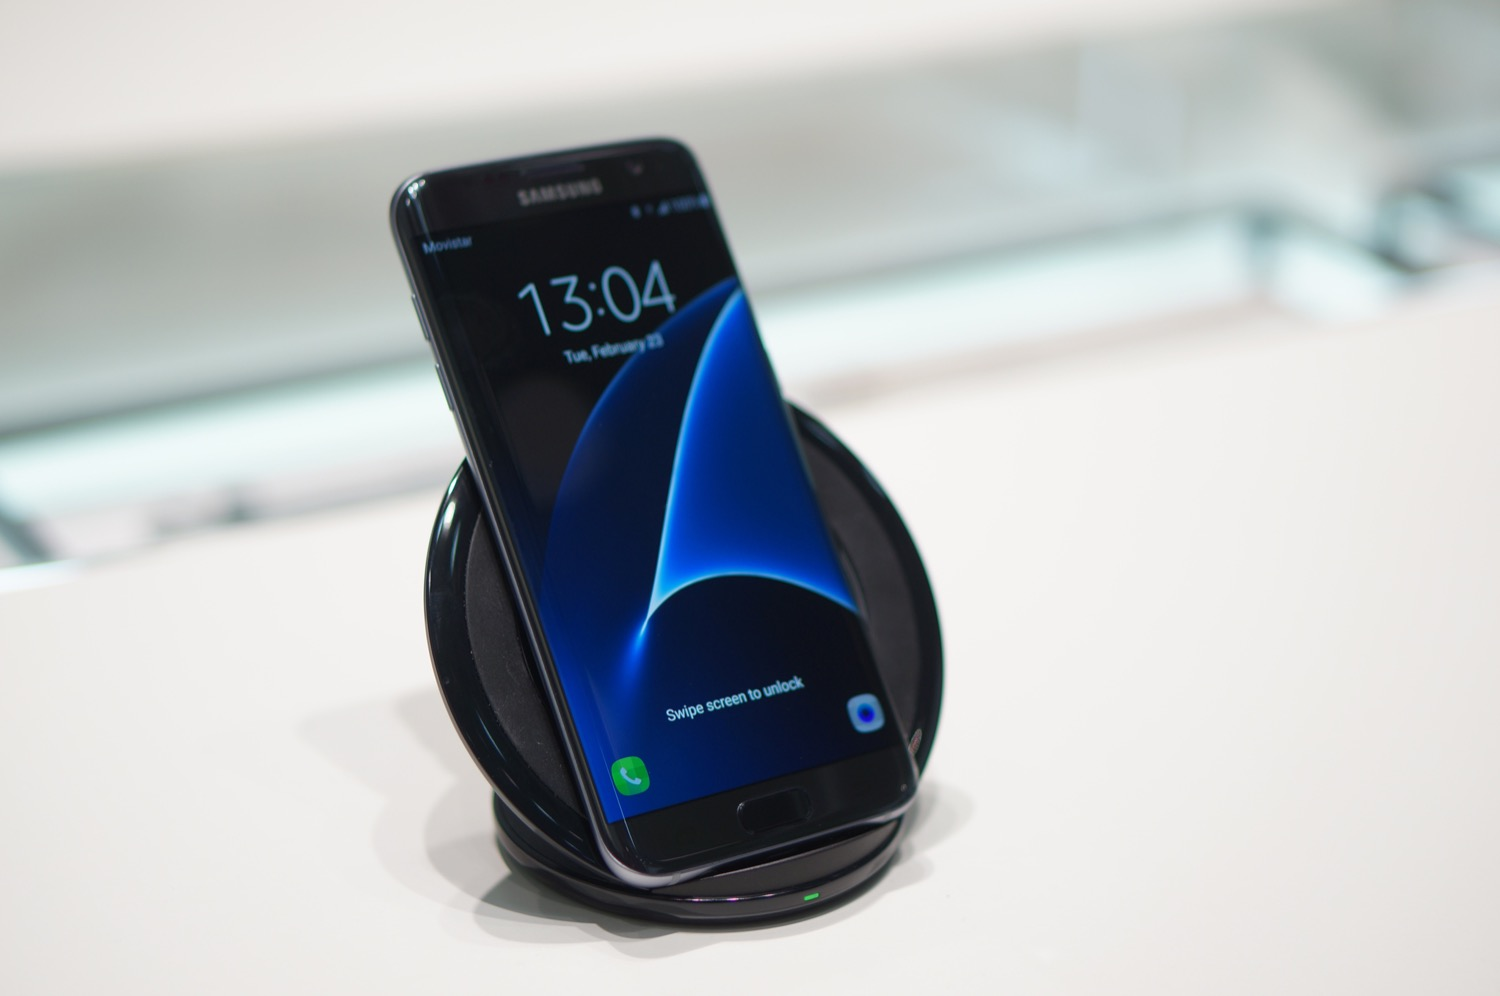 chargeur a induction samsung s7 edge